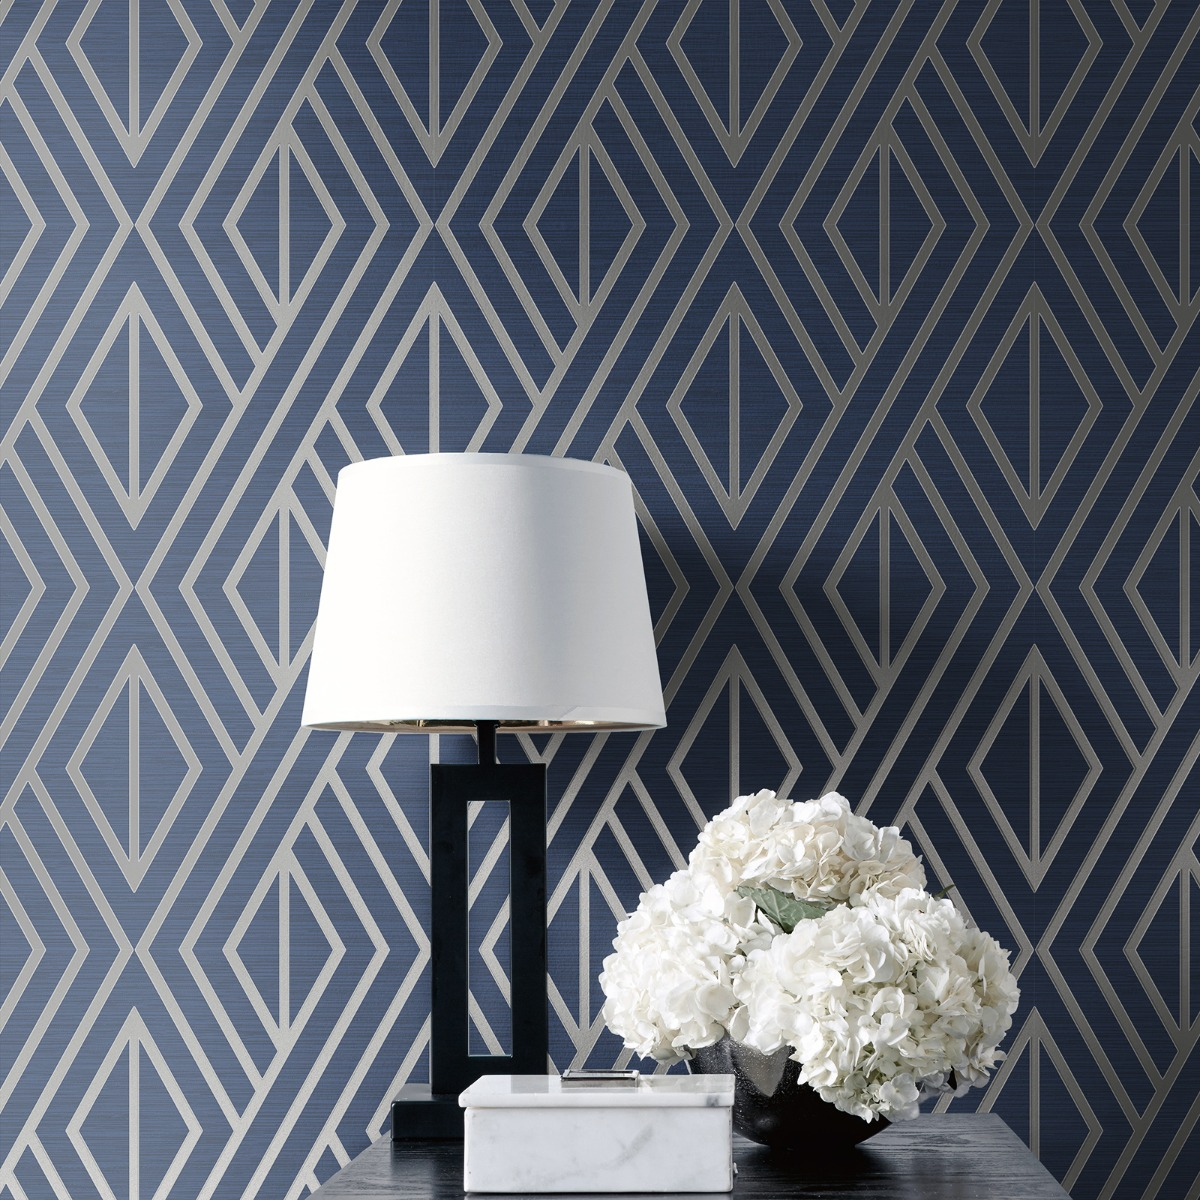 Geometric Wallpaper Blue and Silver Pear Tree